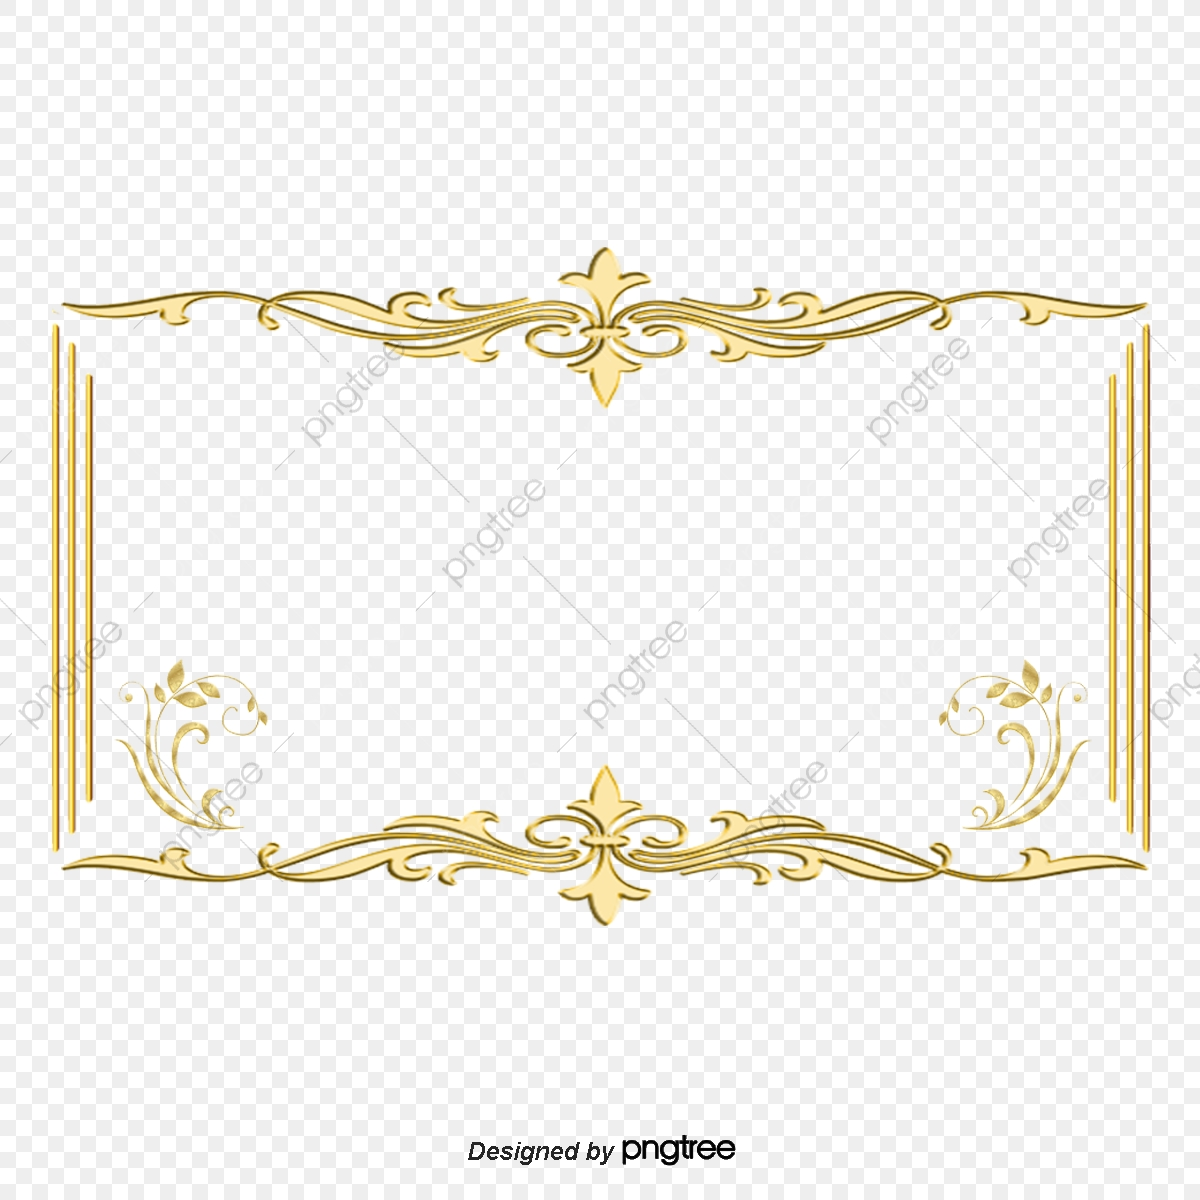 the frame pattern move the golden flower square is long photo frame the flowers is png transparent clipart image and psd file for free download https pngtree com freepng the frame pattern move the golden flower square is long 3739620 html